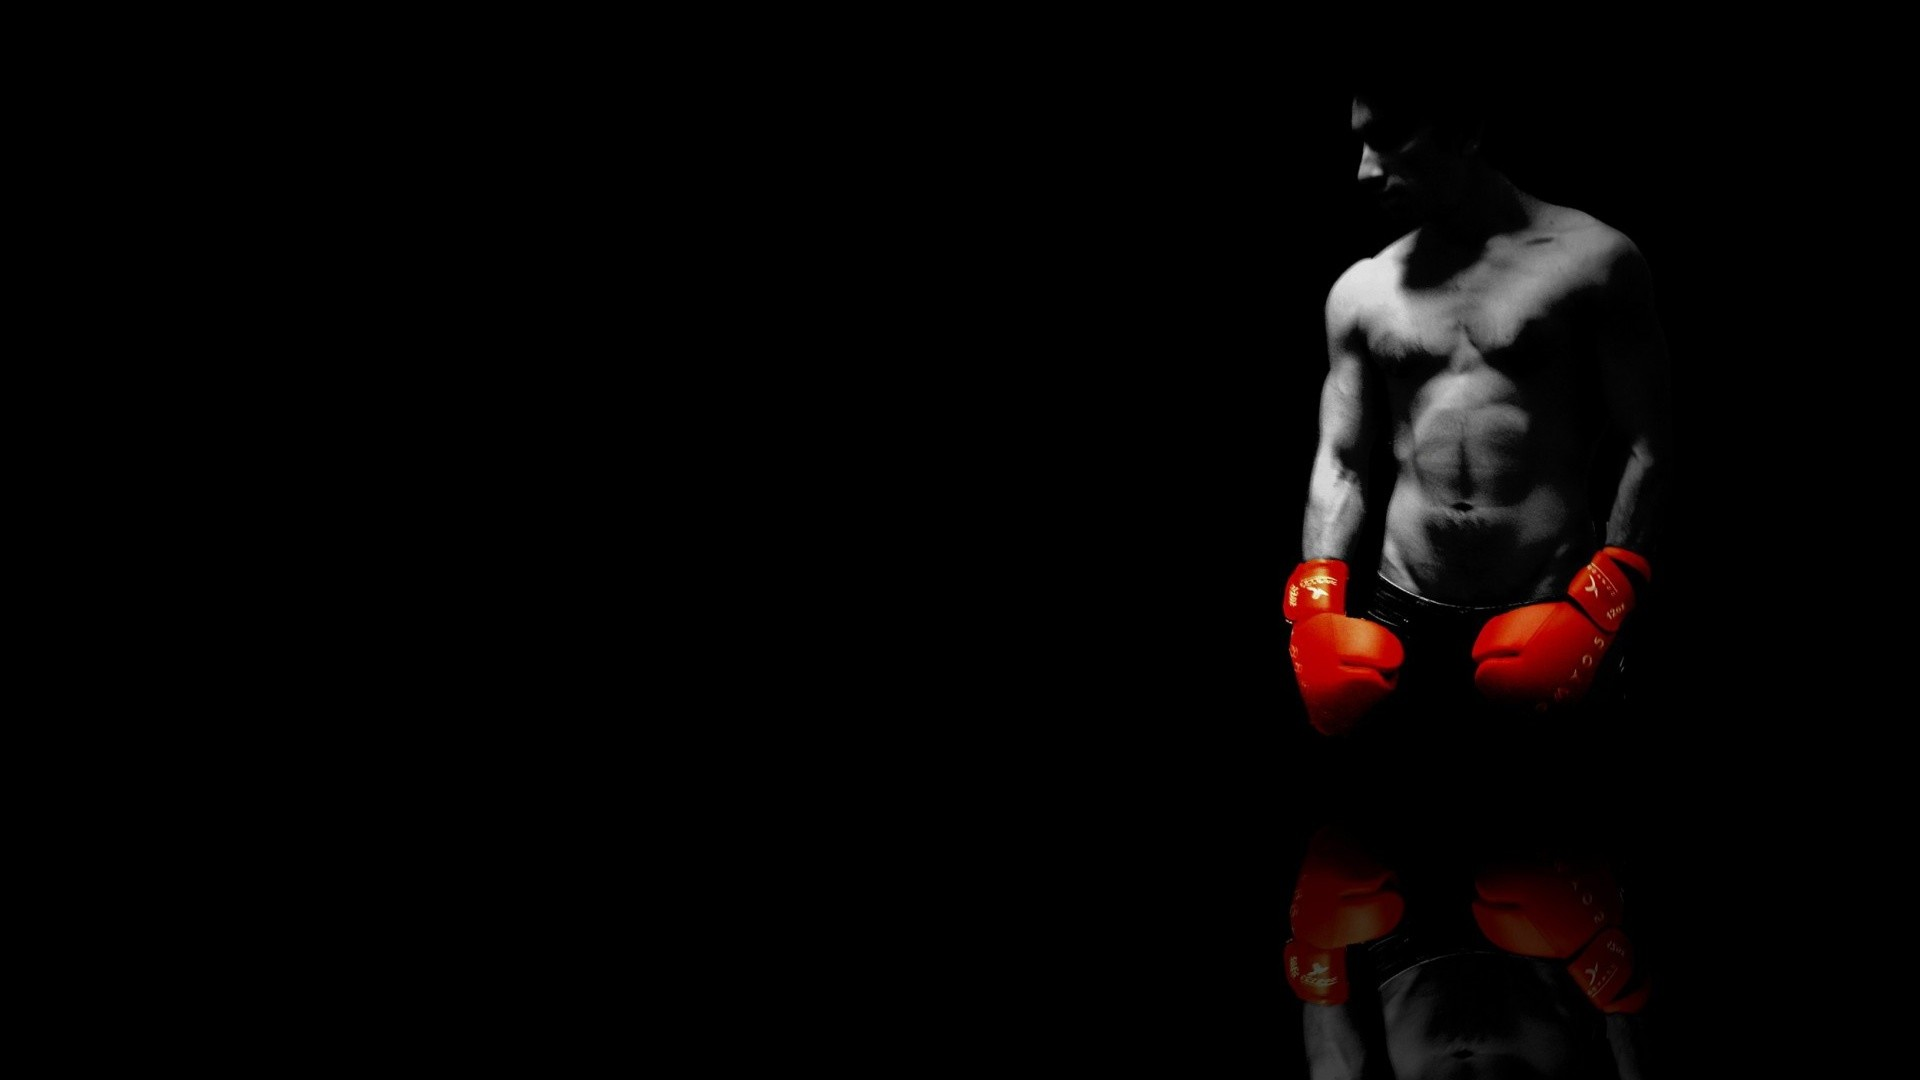 Res: 1920x1080, Free Boxing Gloves Photo.